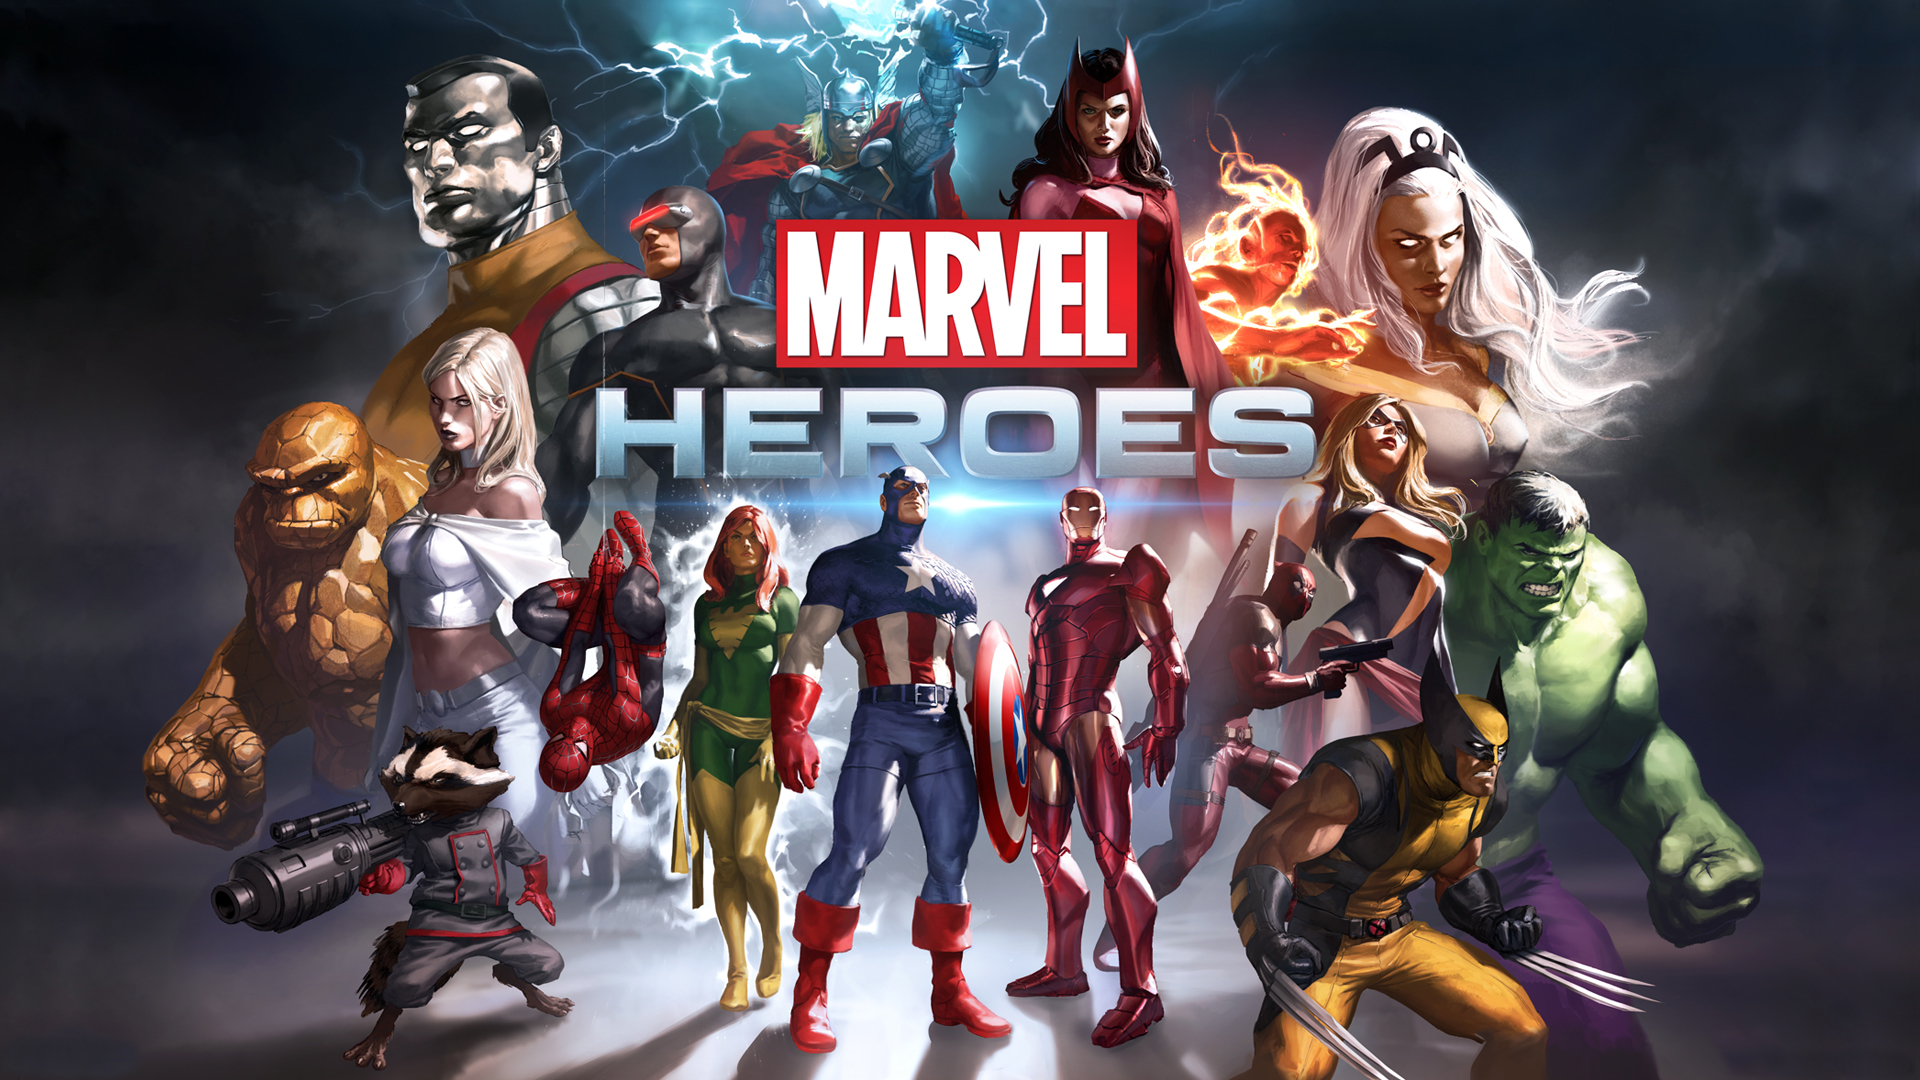 Marvel Heroes Game 439.22 Kb